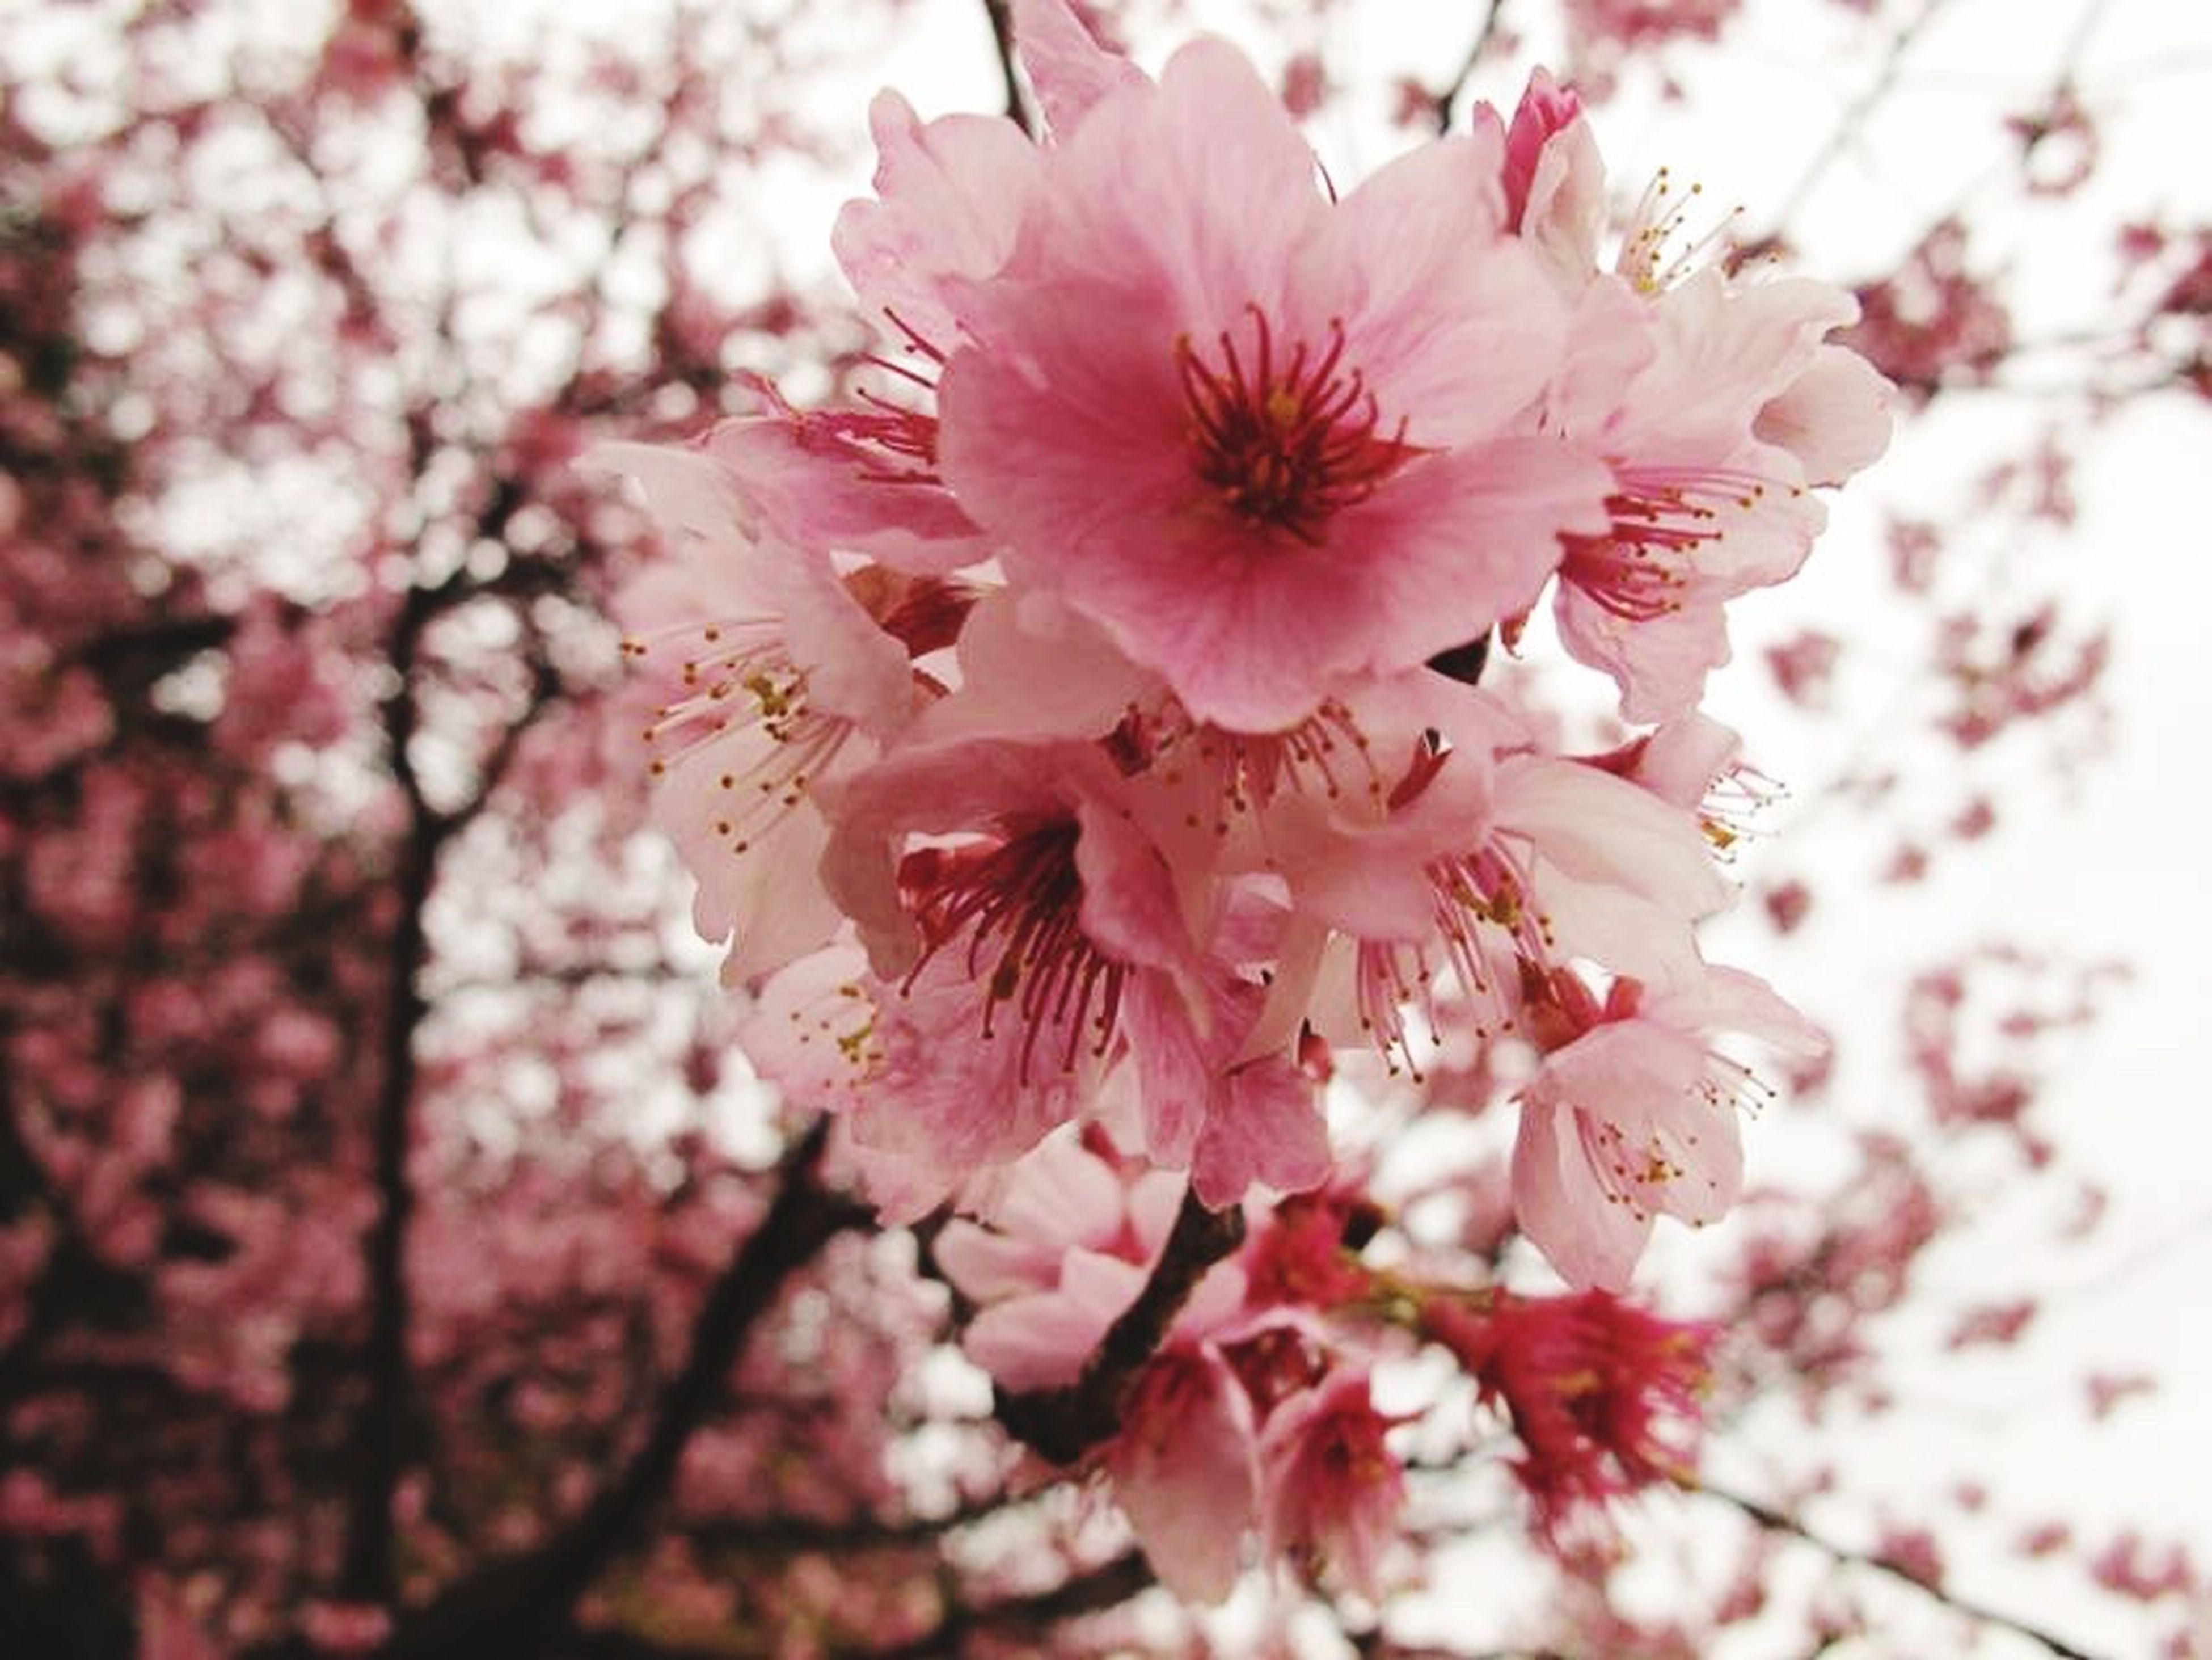 flower, blossom, fragility, springtime, beauty in nature, cherry blossom, pink color, petal, freshness, flower head, nature, cherry tree, growth, tree, botany, apple blossom, branch, no people, stamen, selective focus, day, pollen, close-up, blooming, outdoors, plum blossom